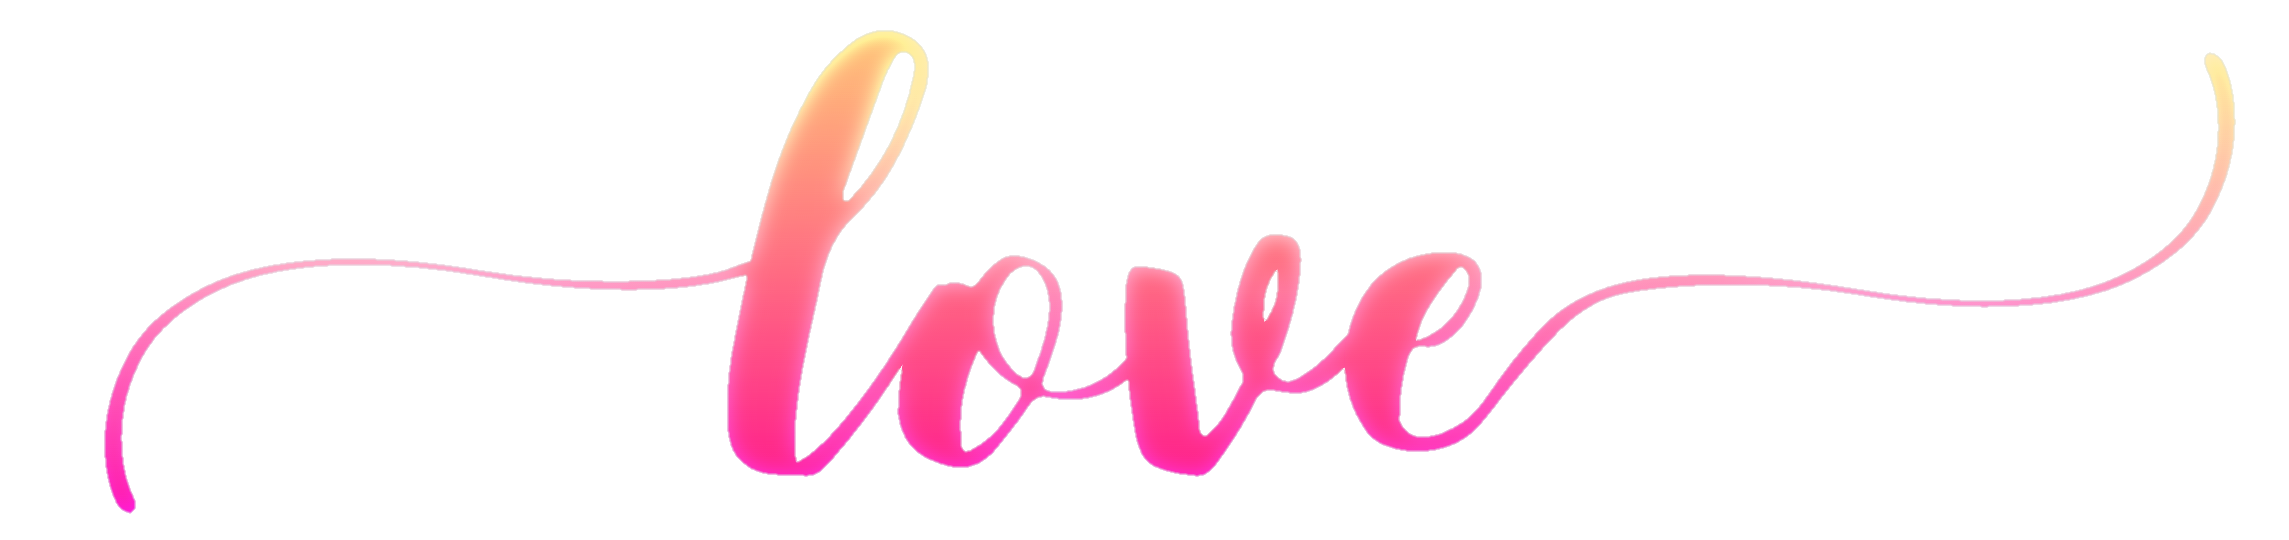 #love #amour #amor #ftestickers #ftstickers #stickers #autocollants #smile #pegatinas